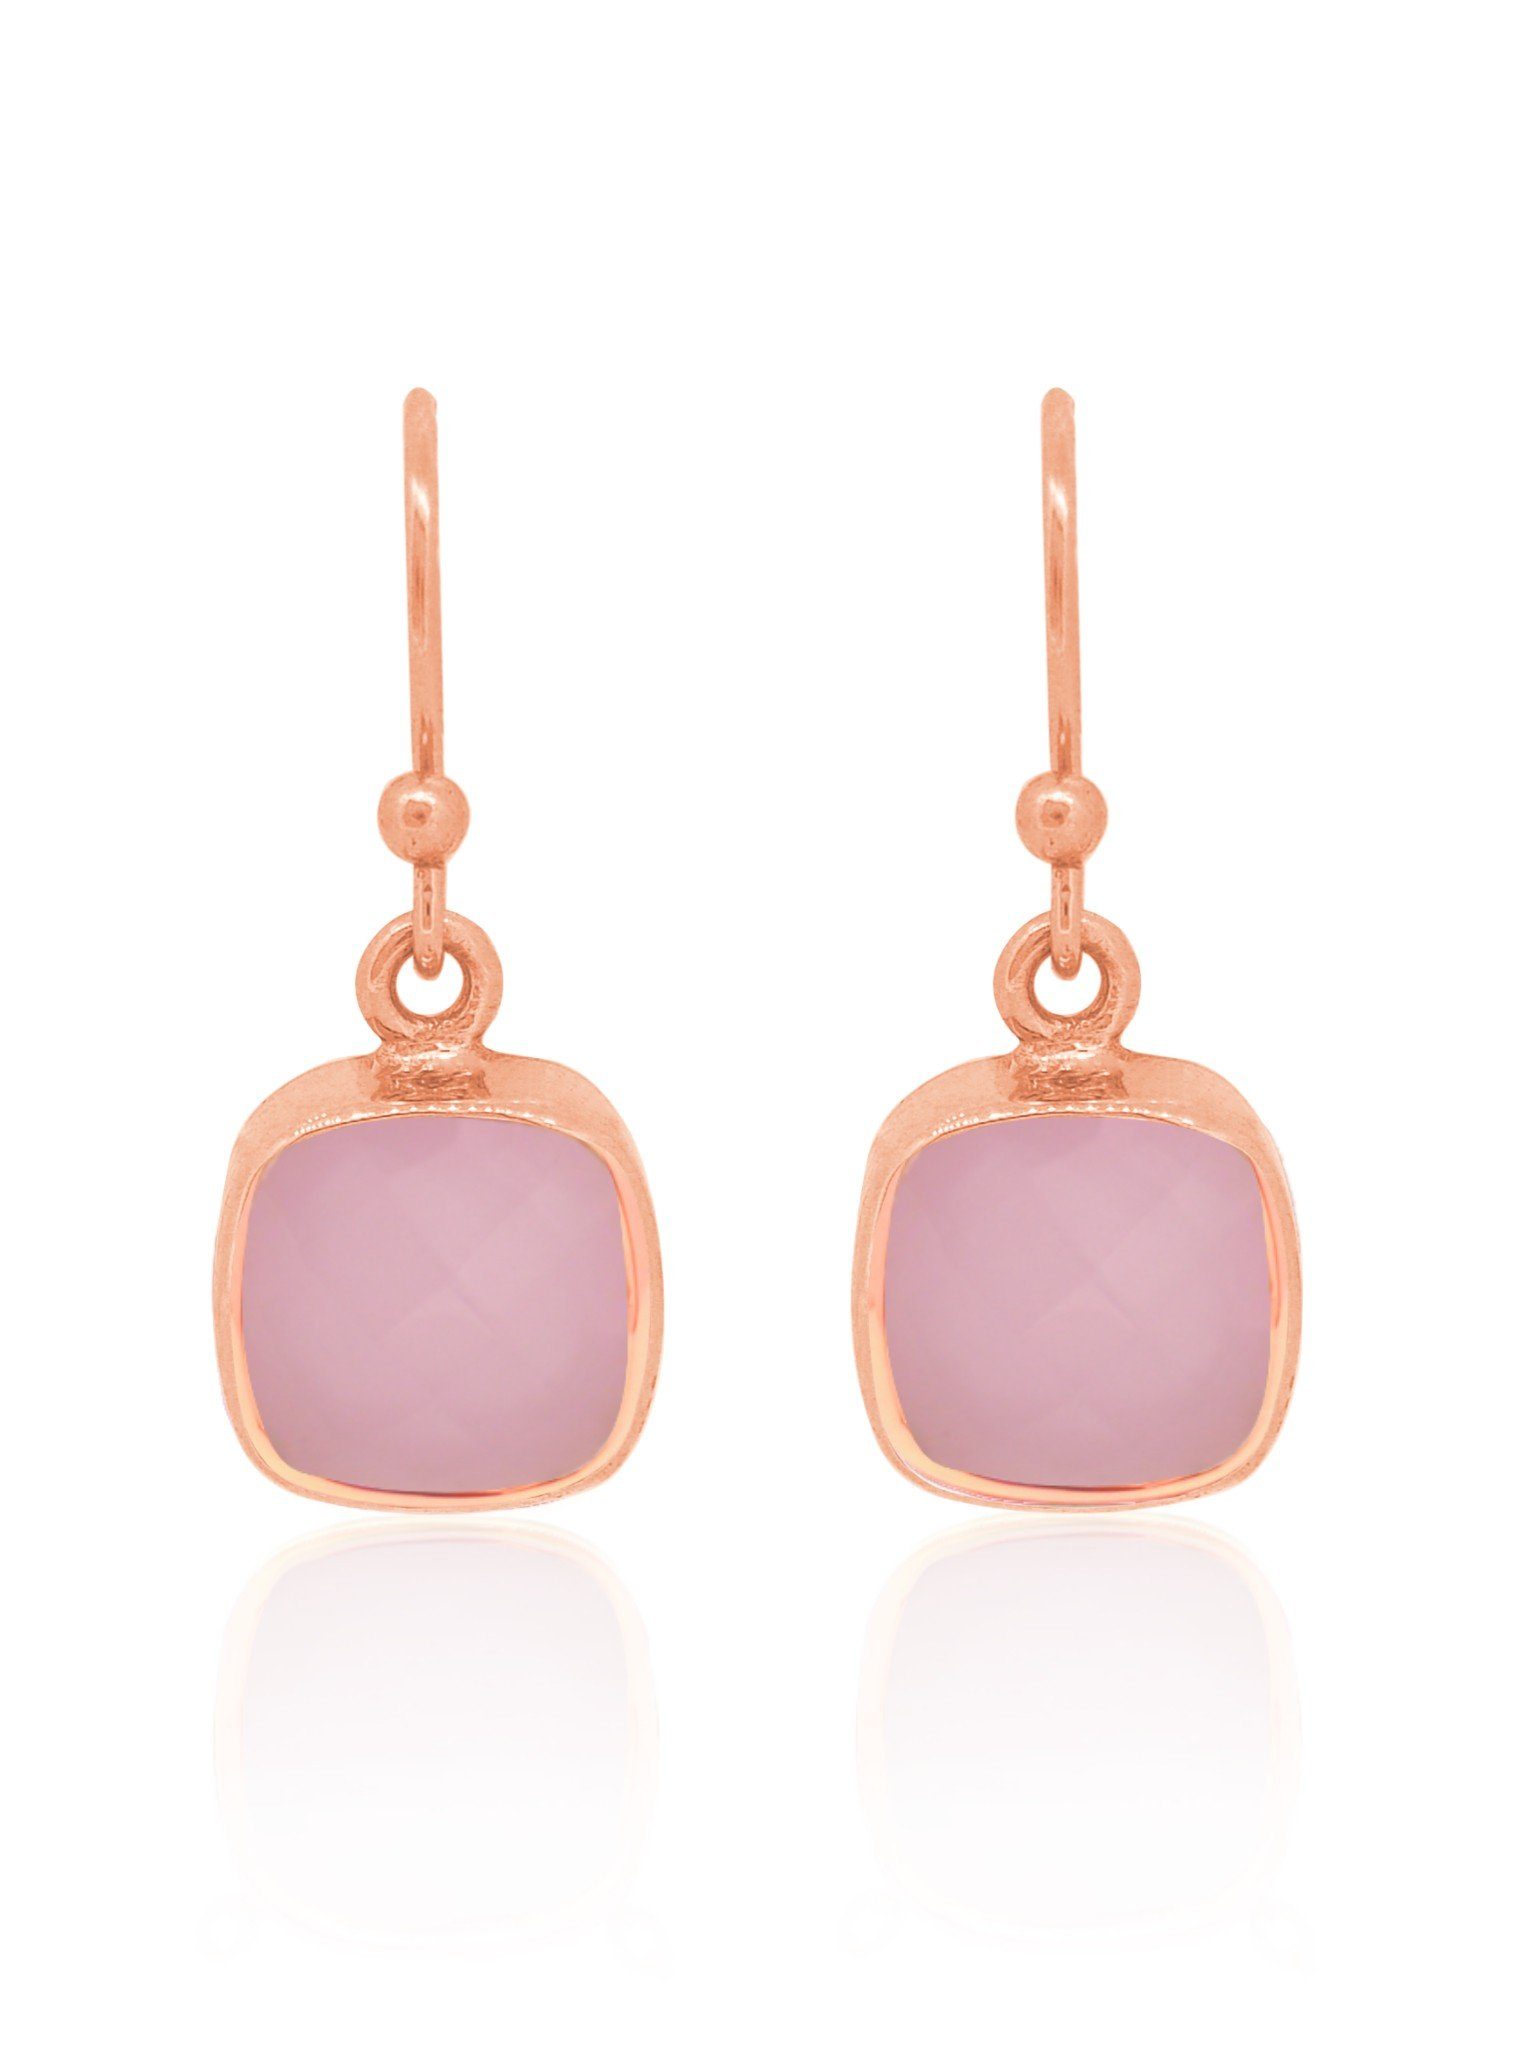 Indie Pink Chalcedony Gemstone Earrings in Rose Gold